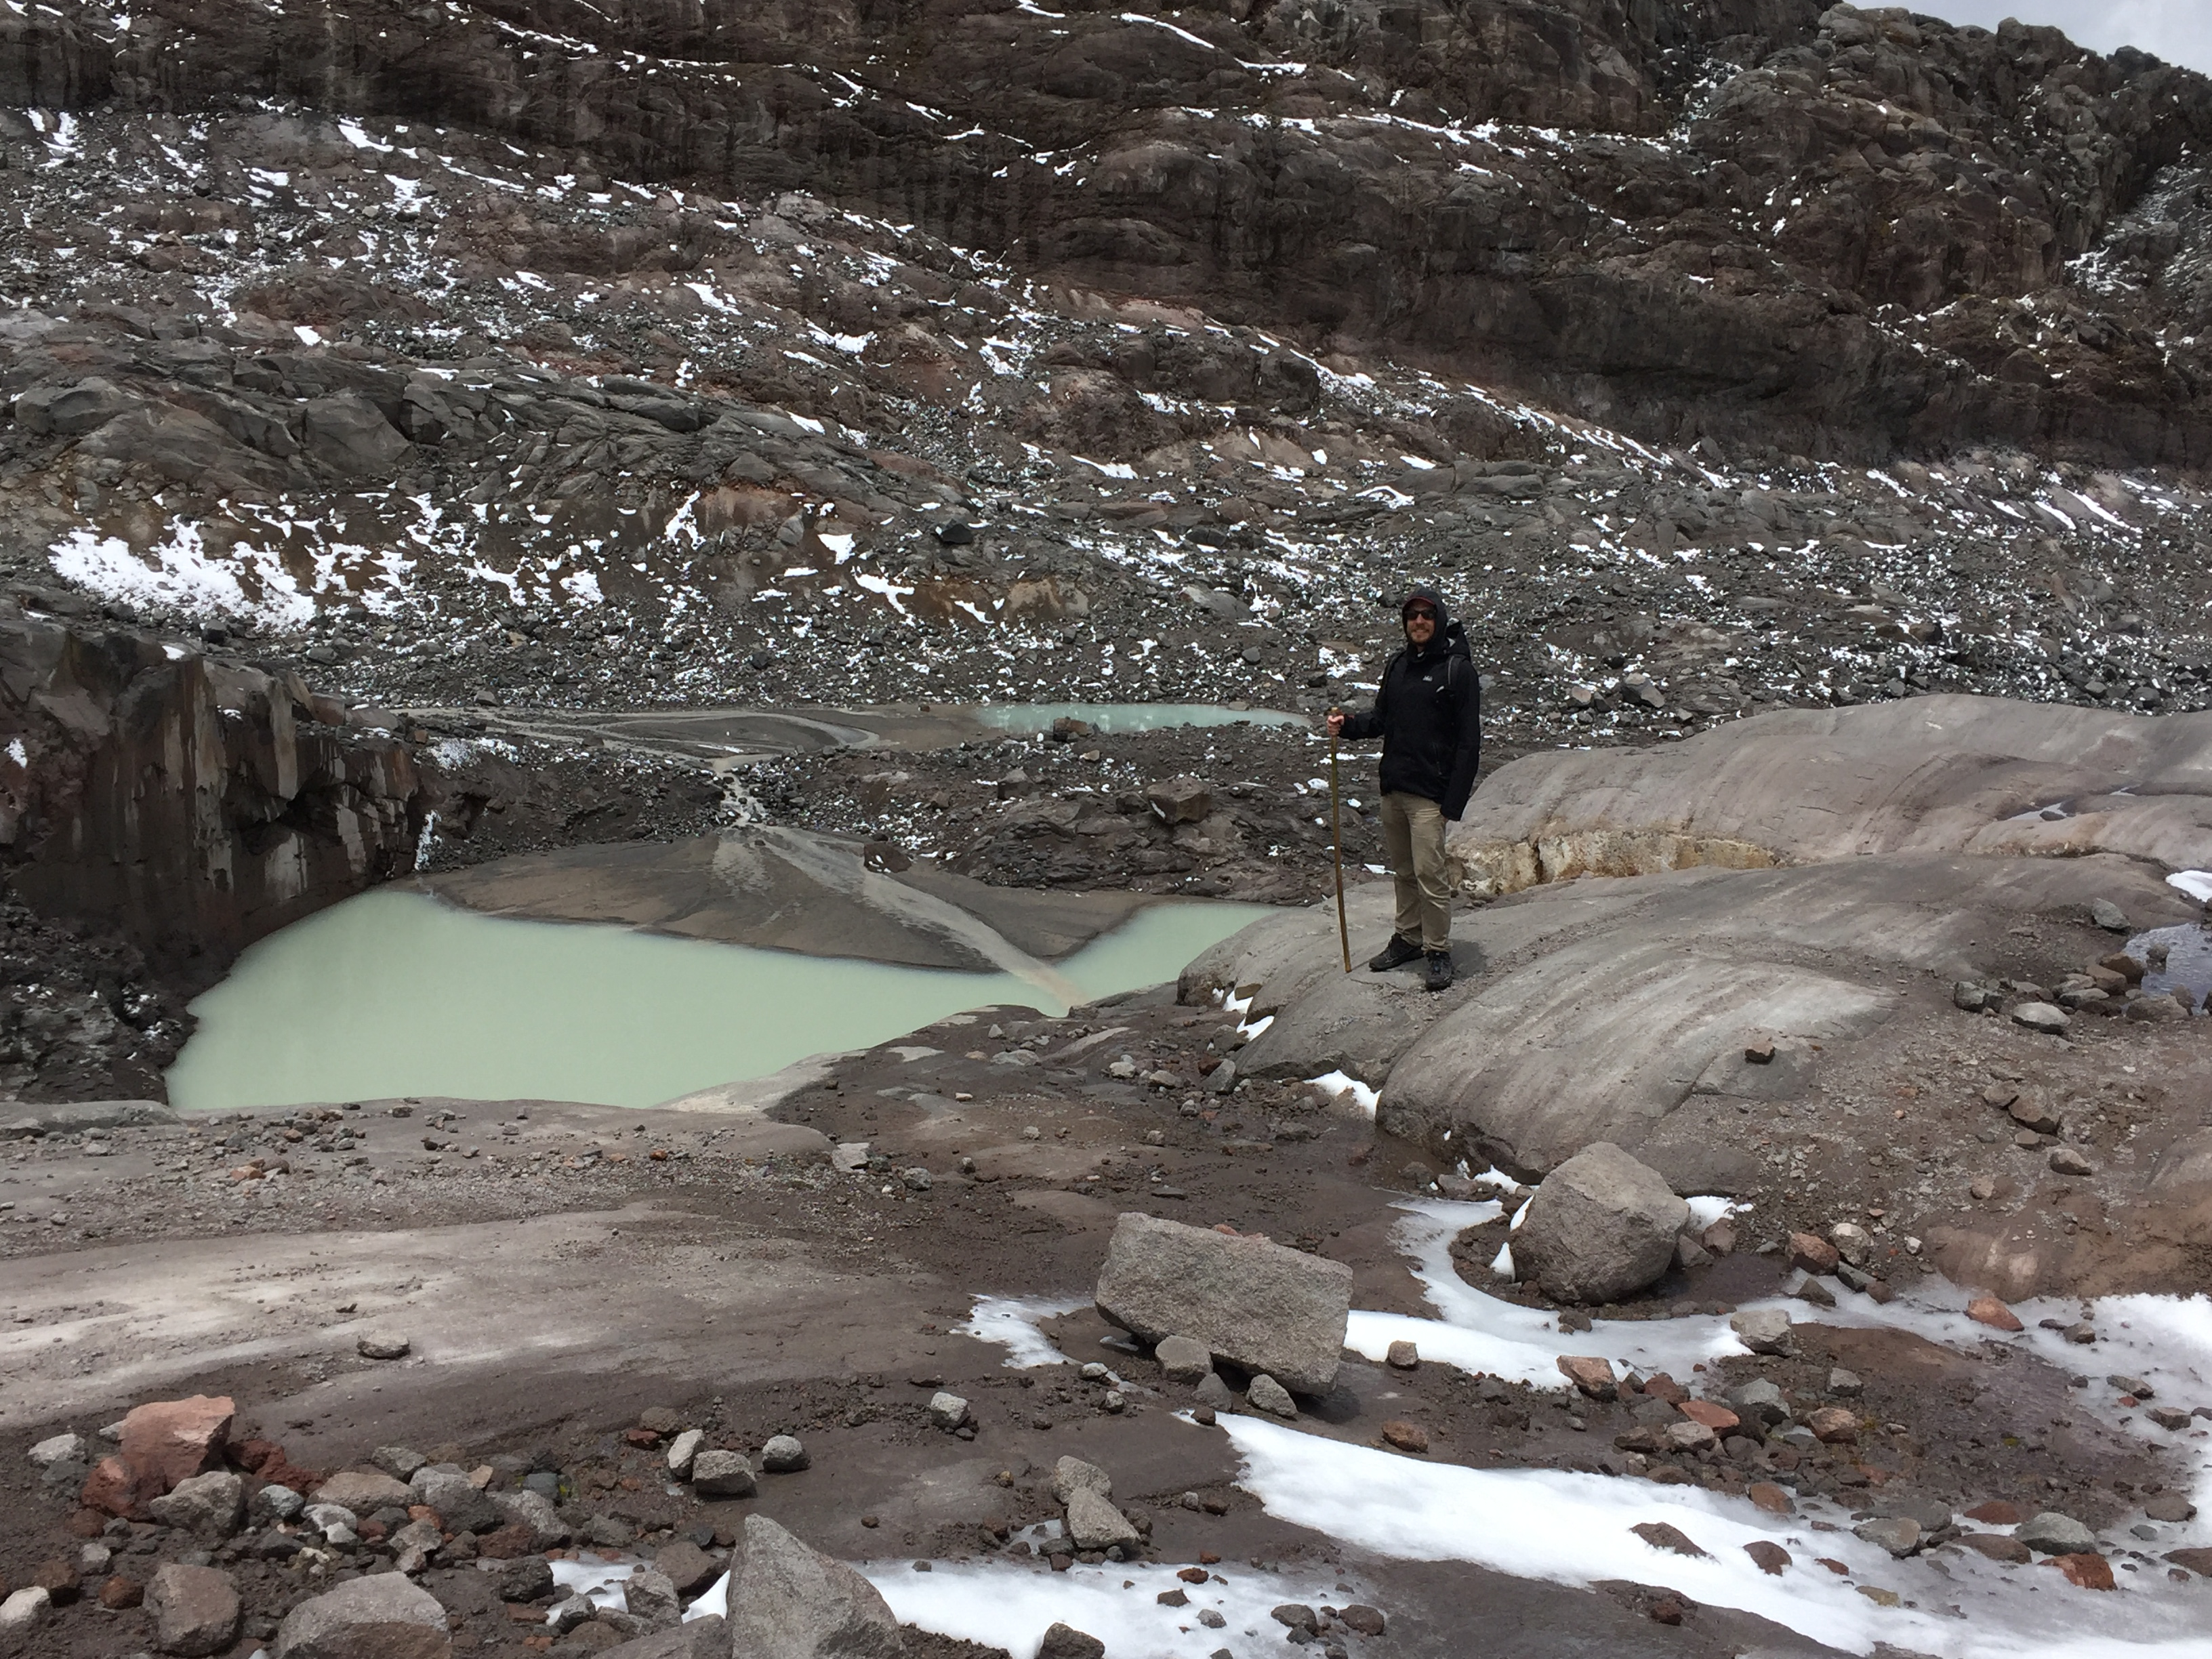 the glacier-fed ponds of the san isabel nevado. They have a strange greenish color, quite distinct from the brown and grey rocks surrounding it.